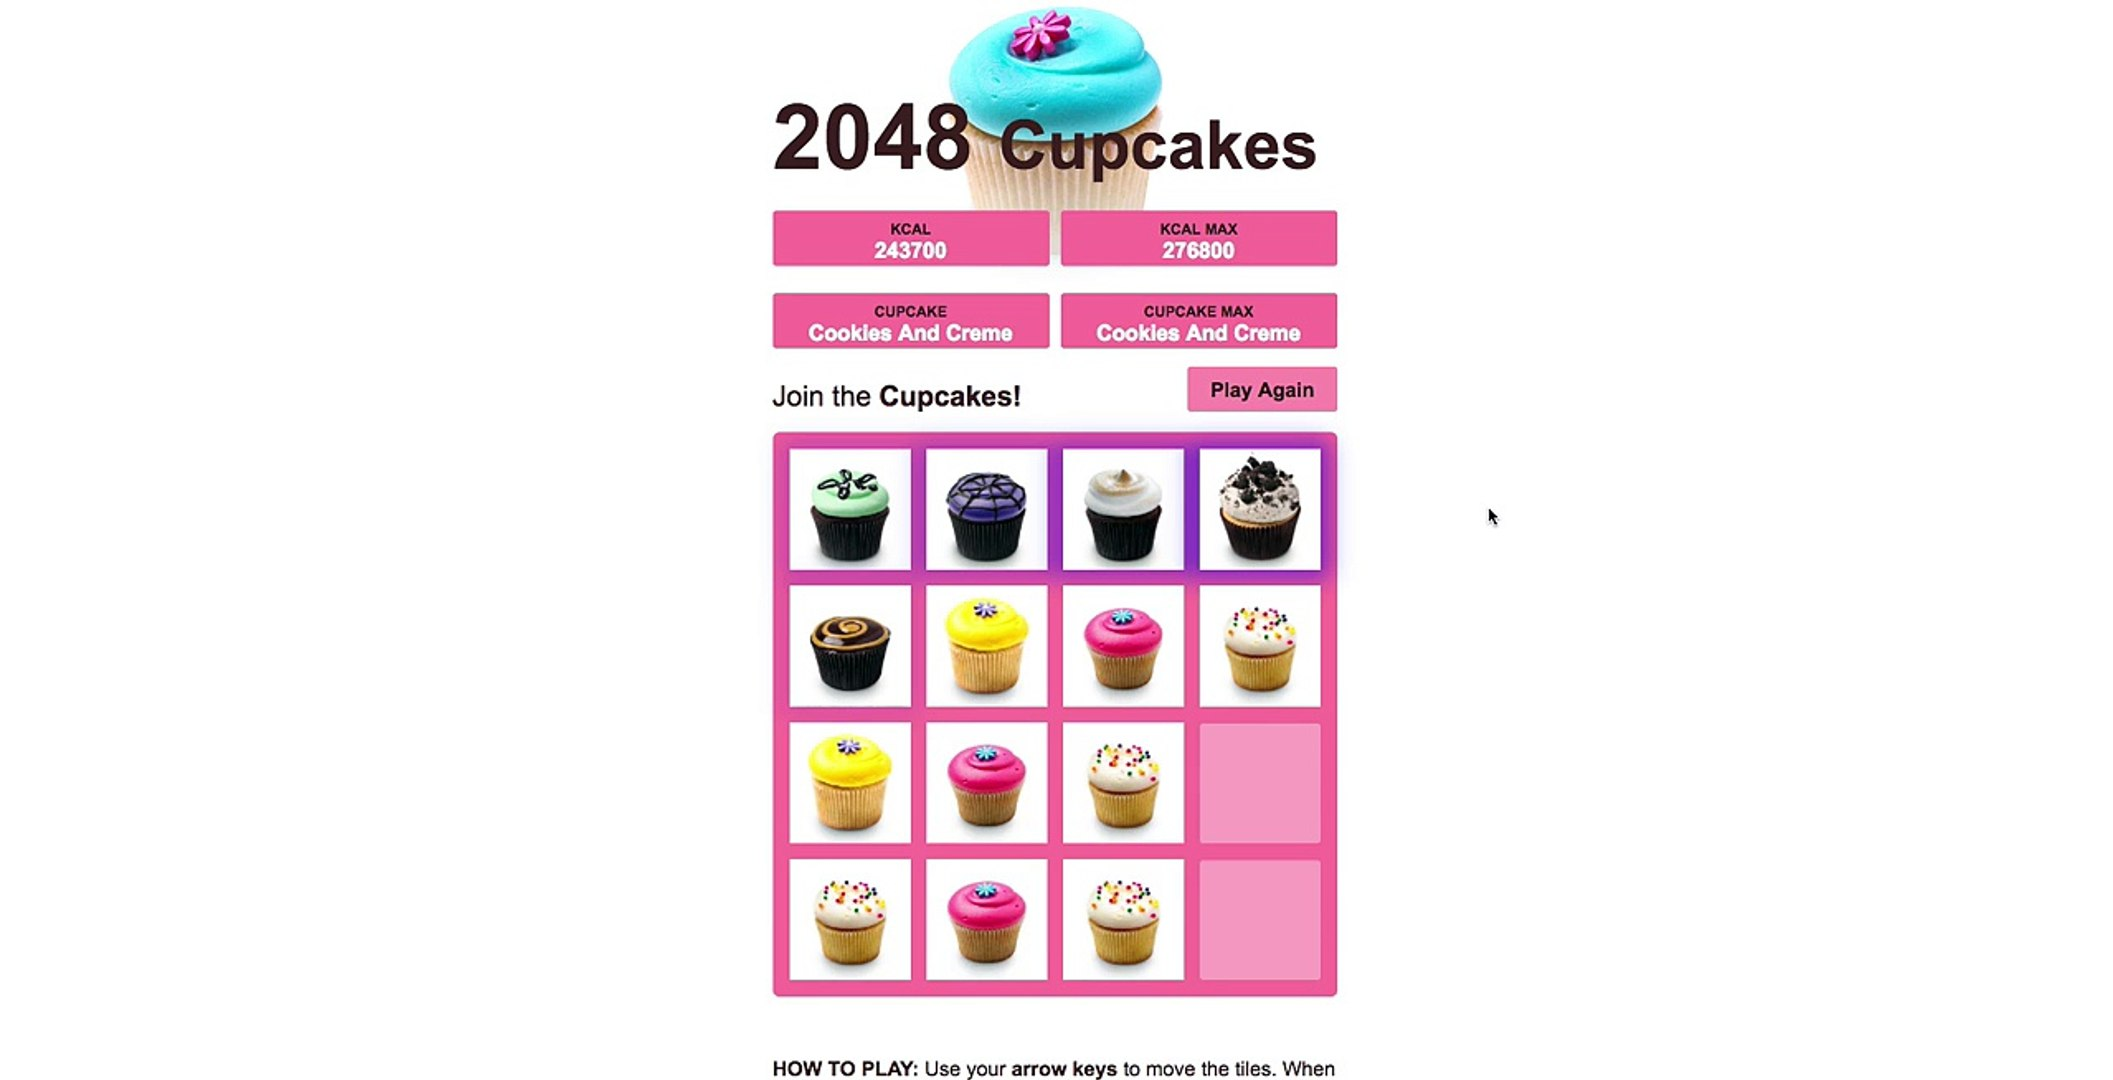 2048 Cupcakes Win Video Dailymotion